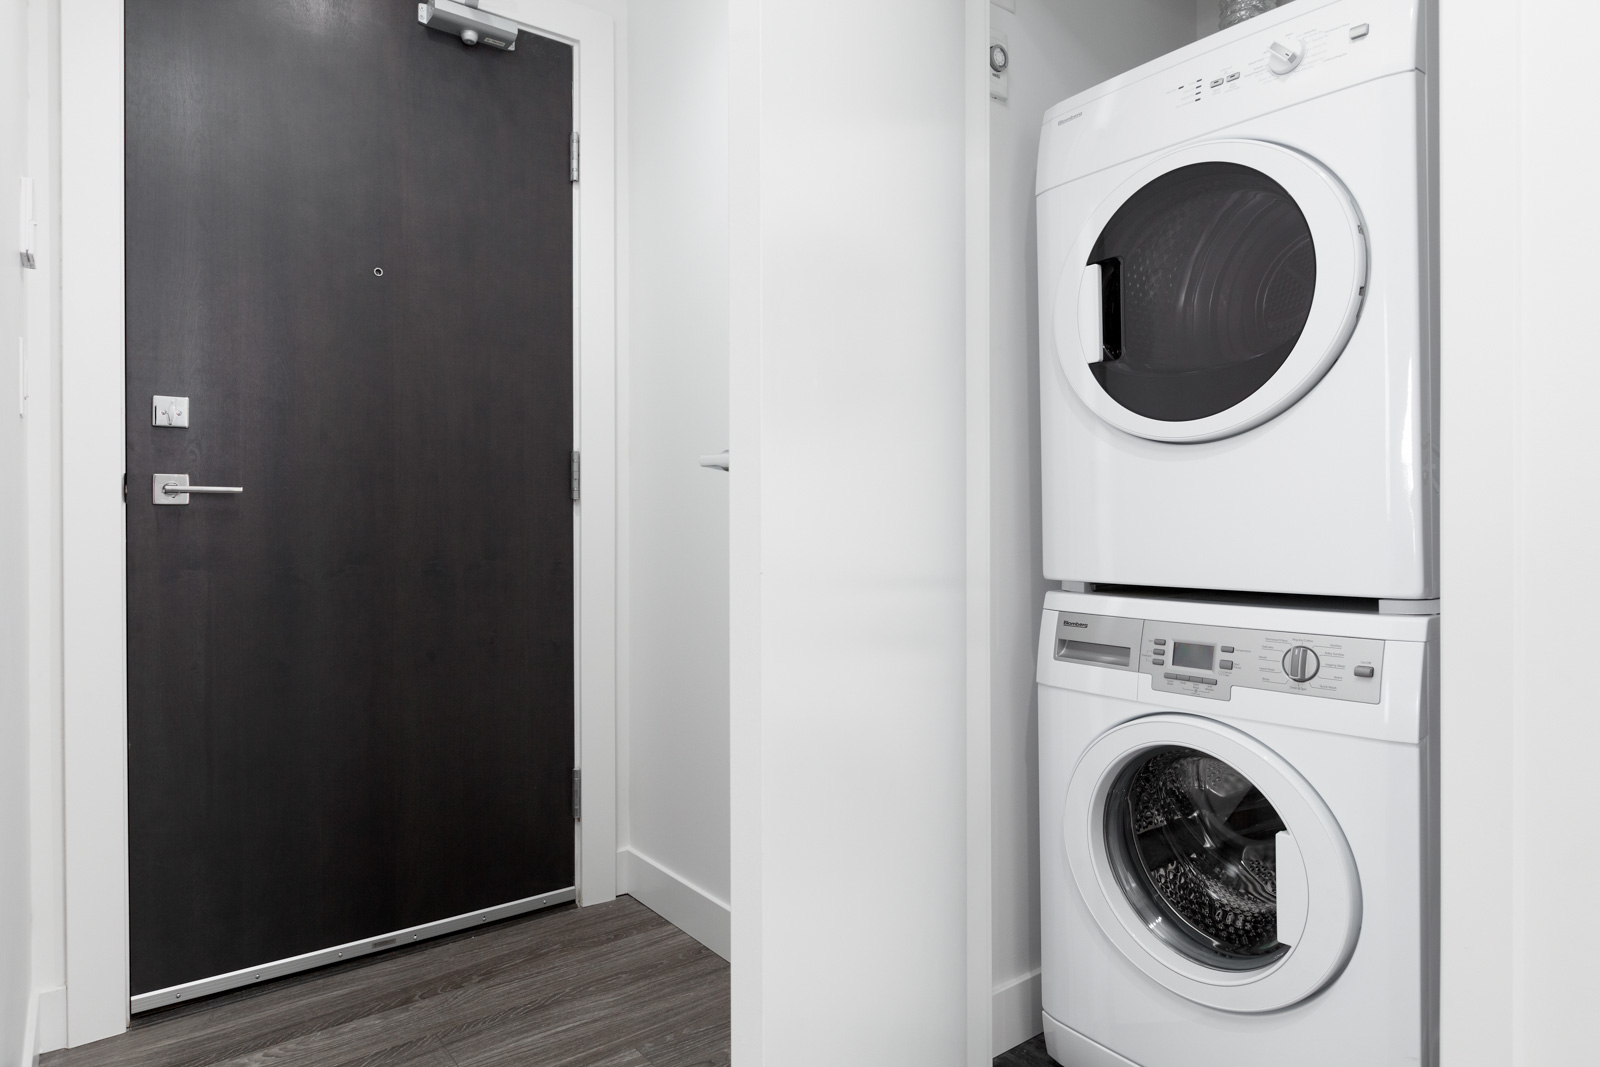 dark entry door on left and washer dryer on right of rental condo in the Yaletown neighbourhood of Vancouver